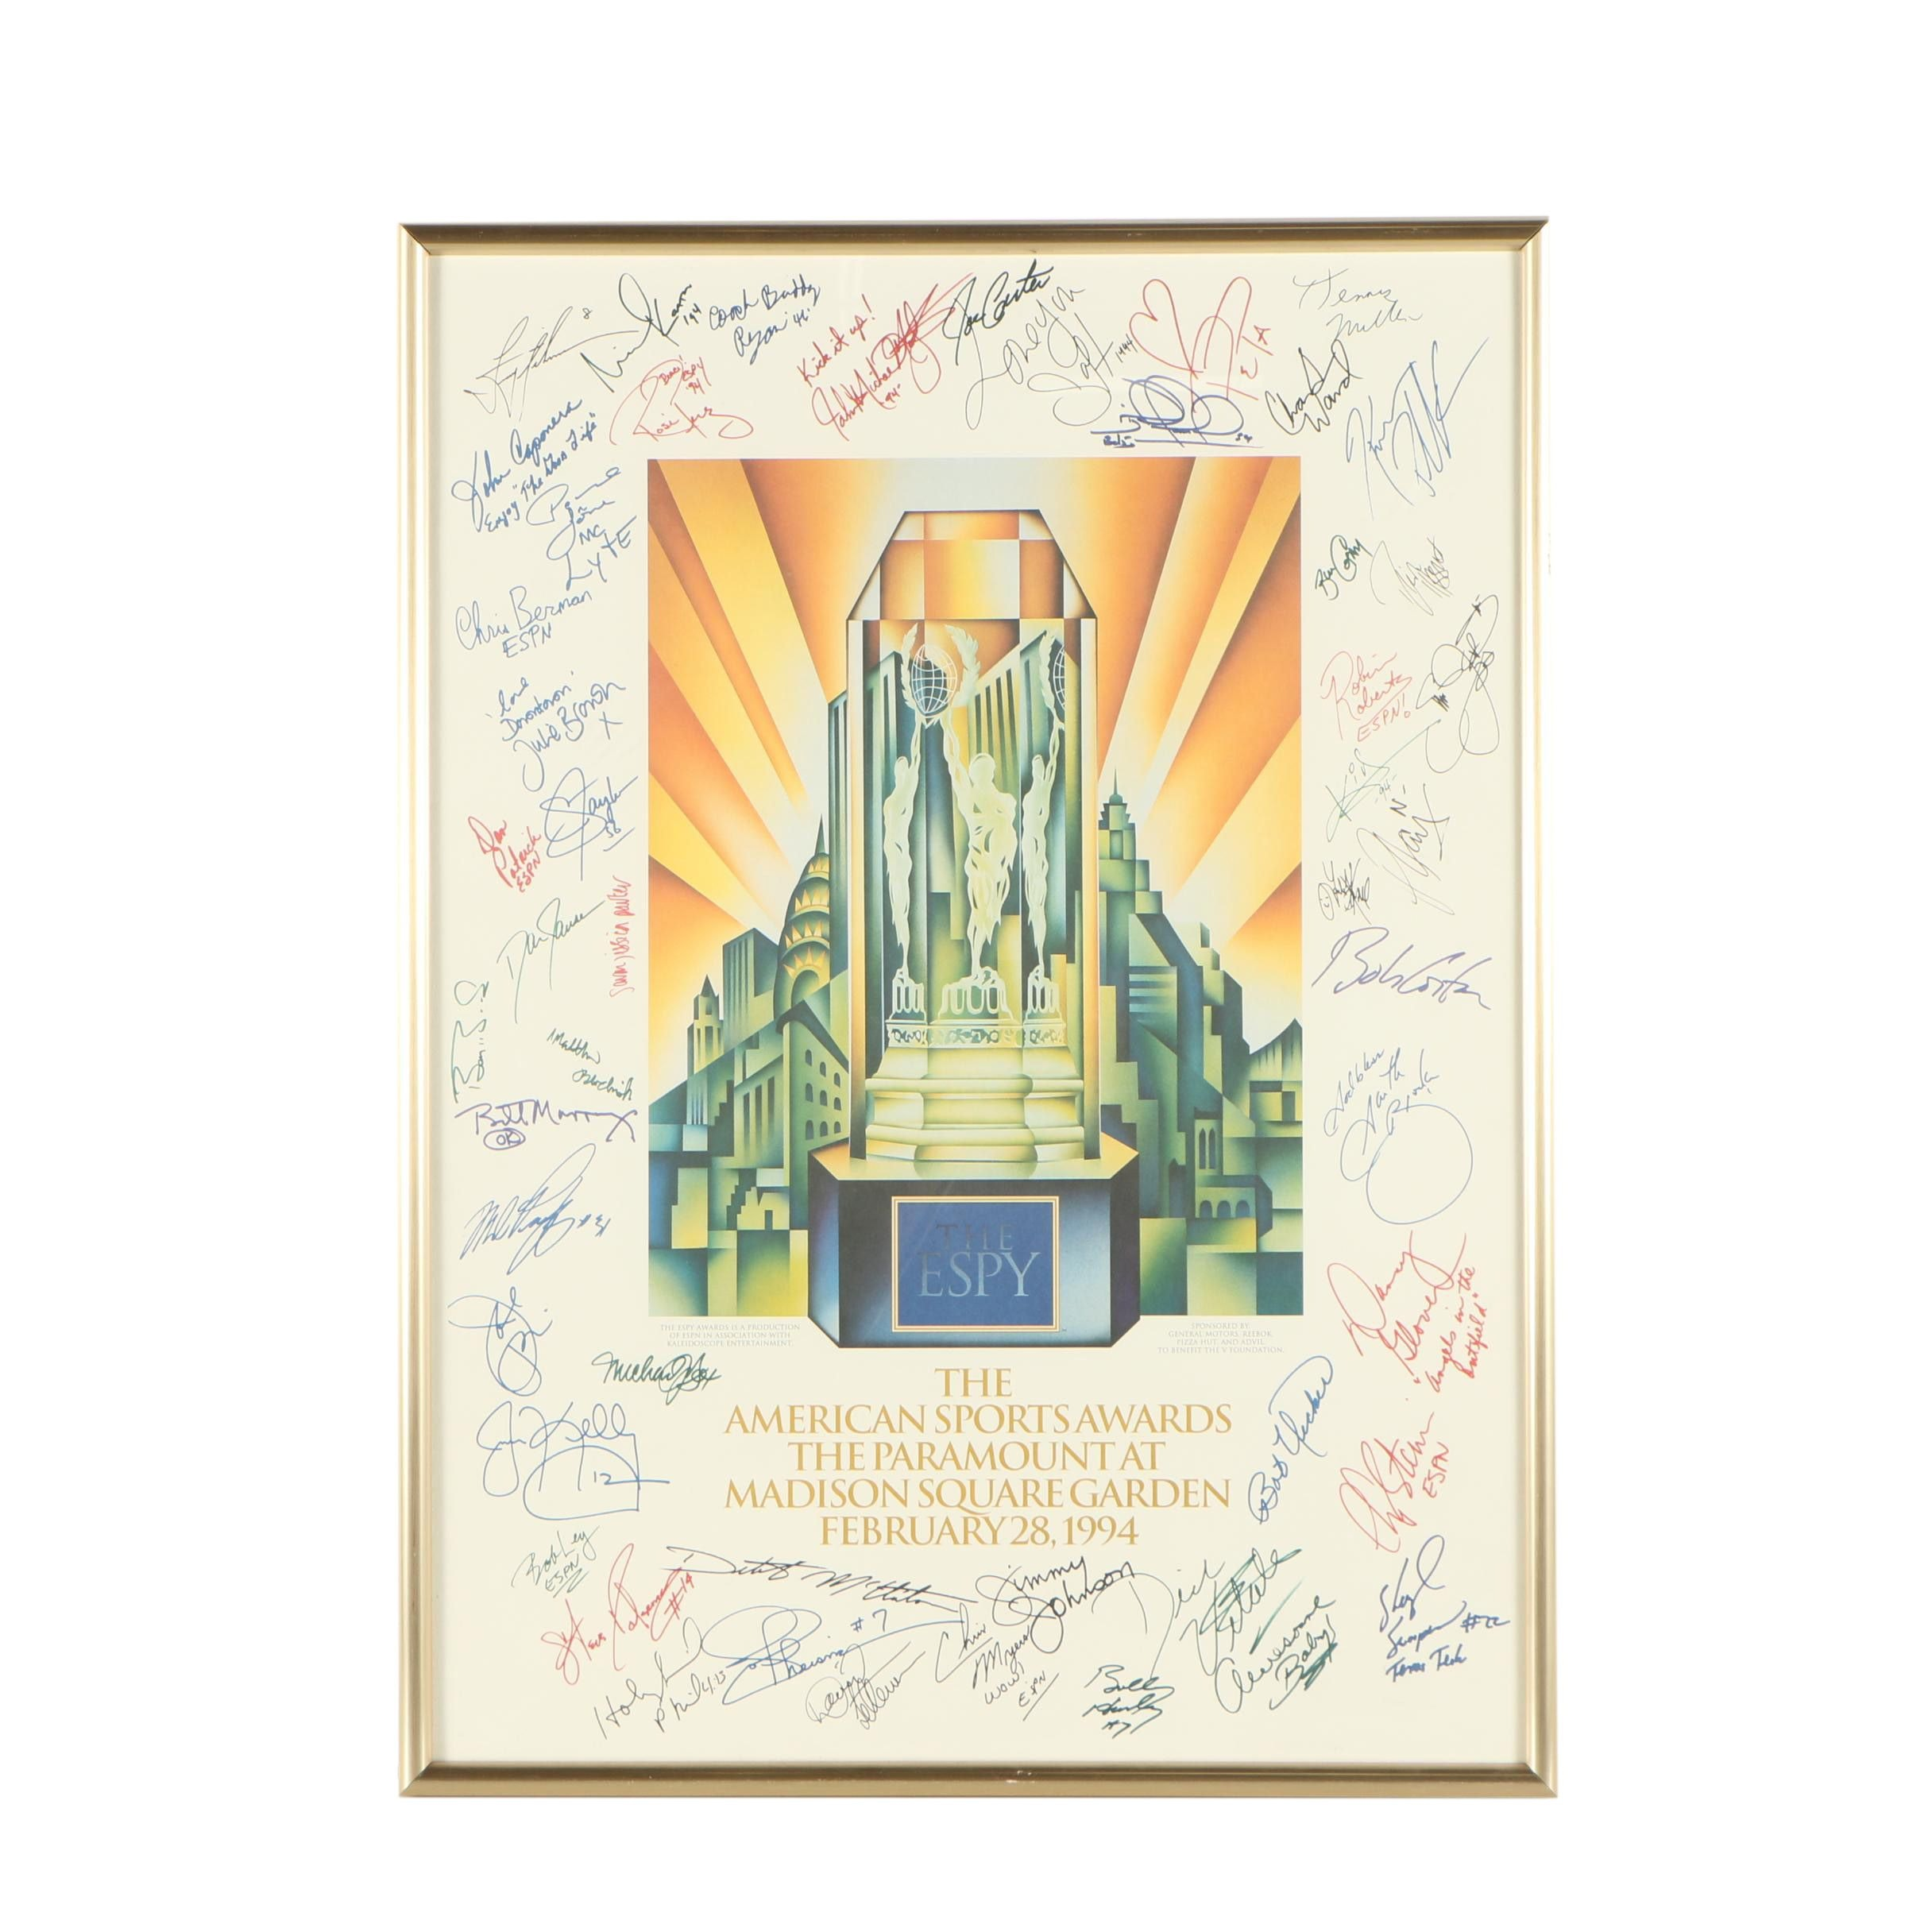 Offset Lithograph of 1994 Espy Awards Poster